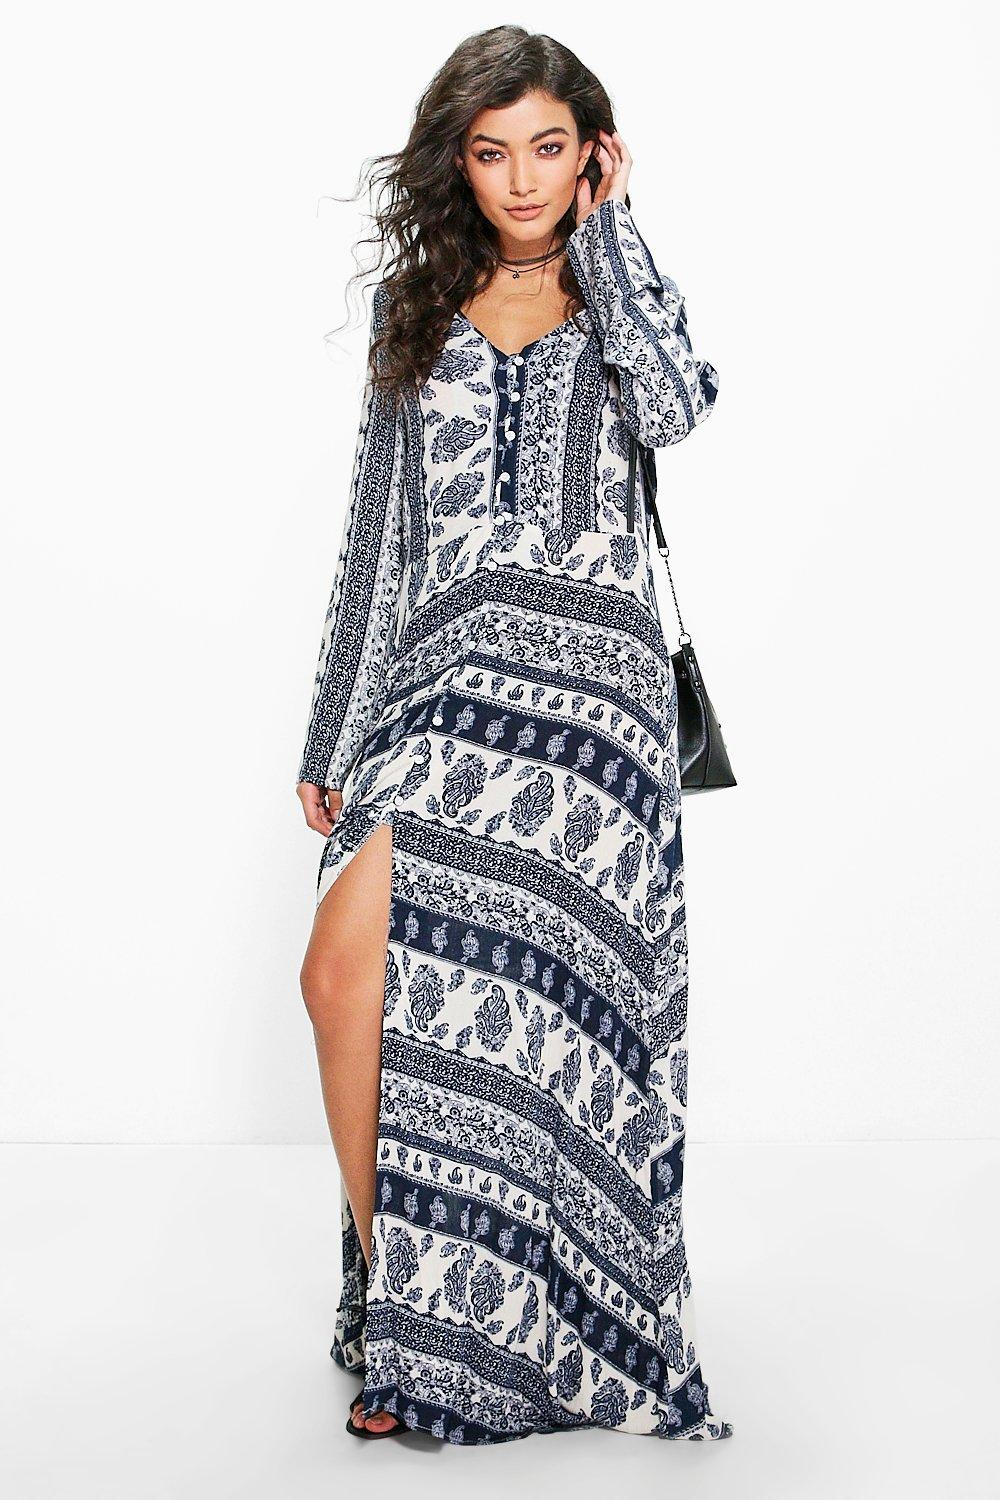 Anna Paisley Printed Boho Maxi Dress